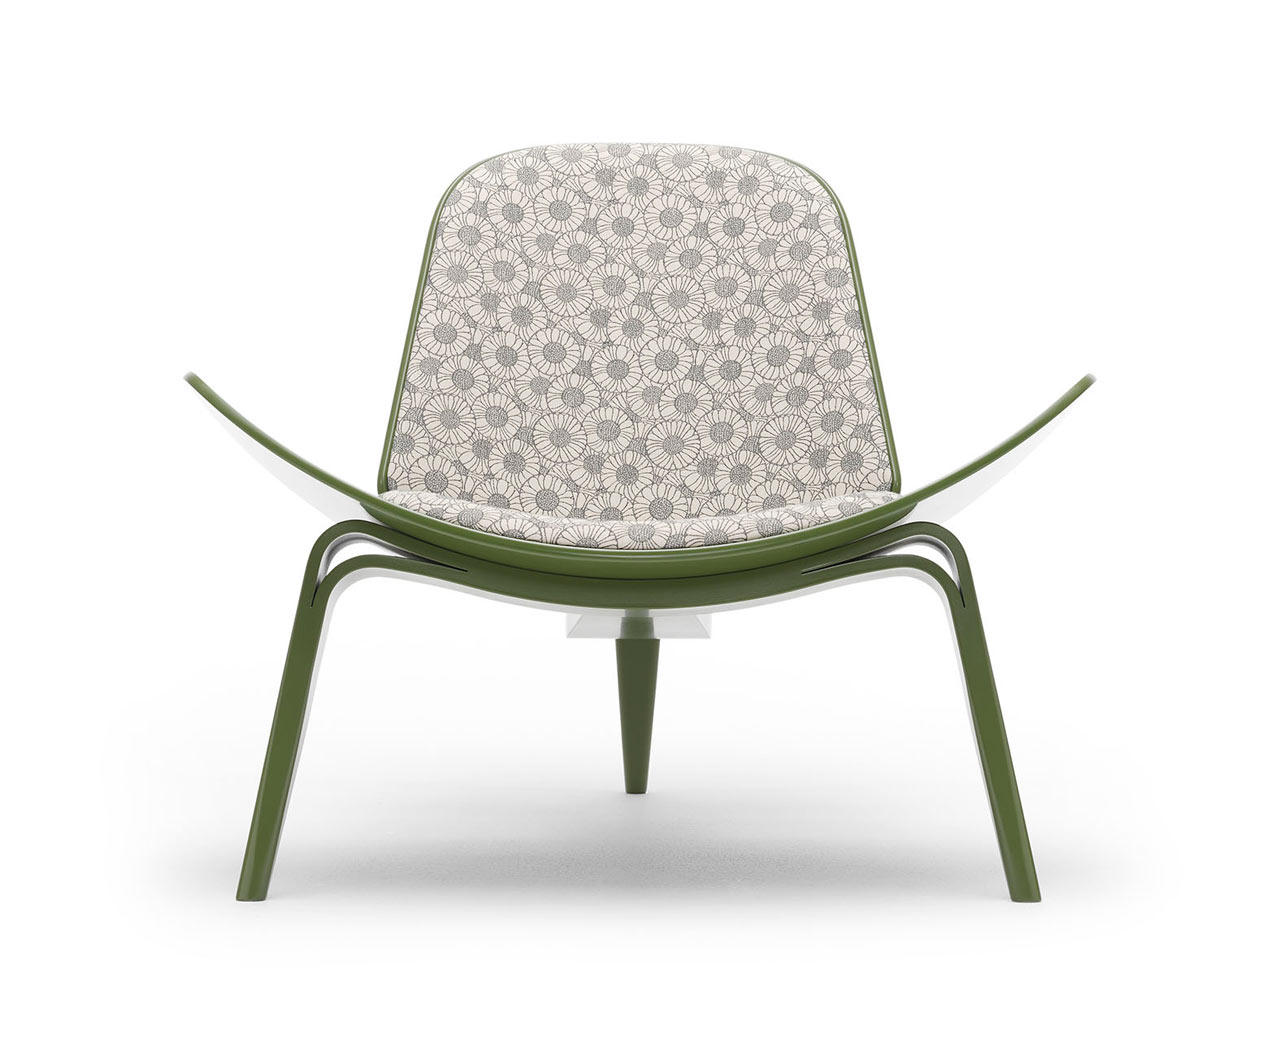 maharam-shell-chair-Orakelblume